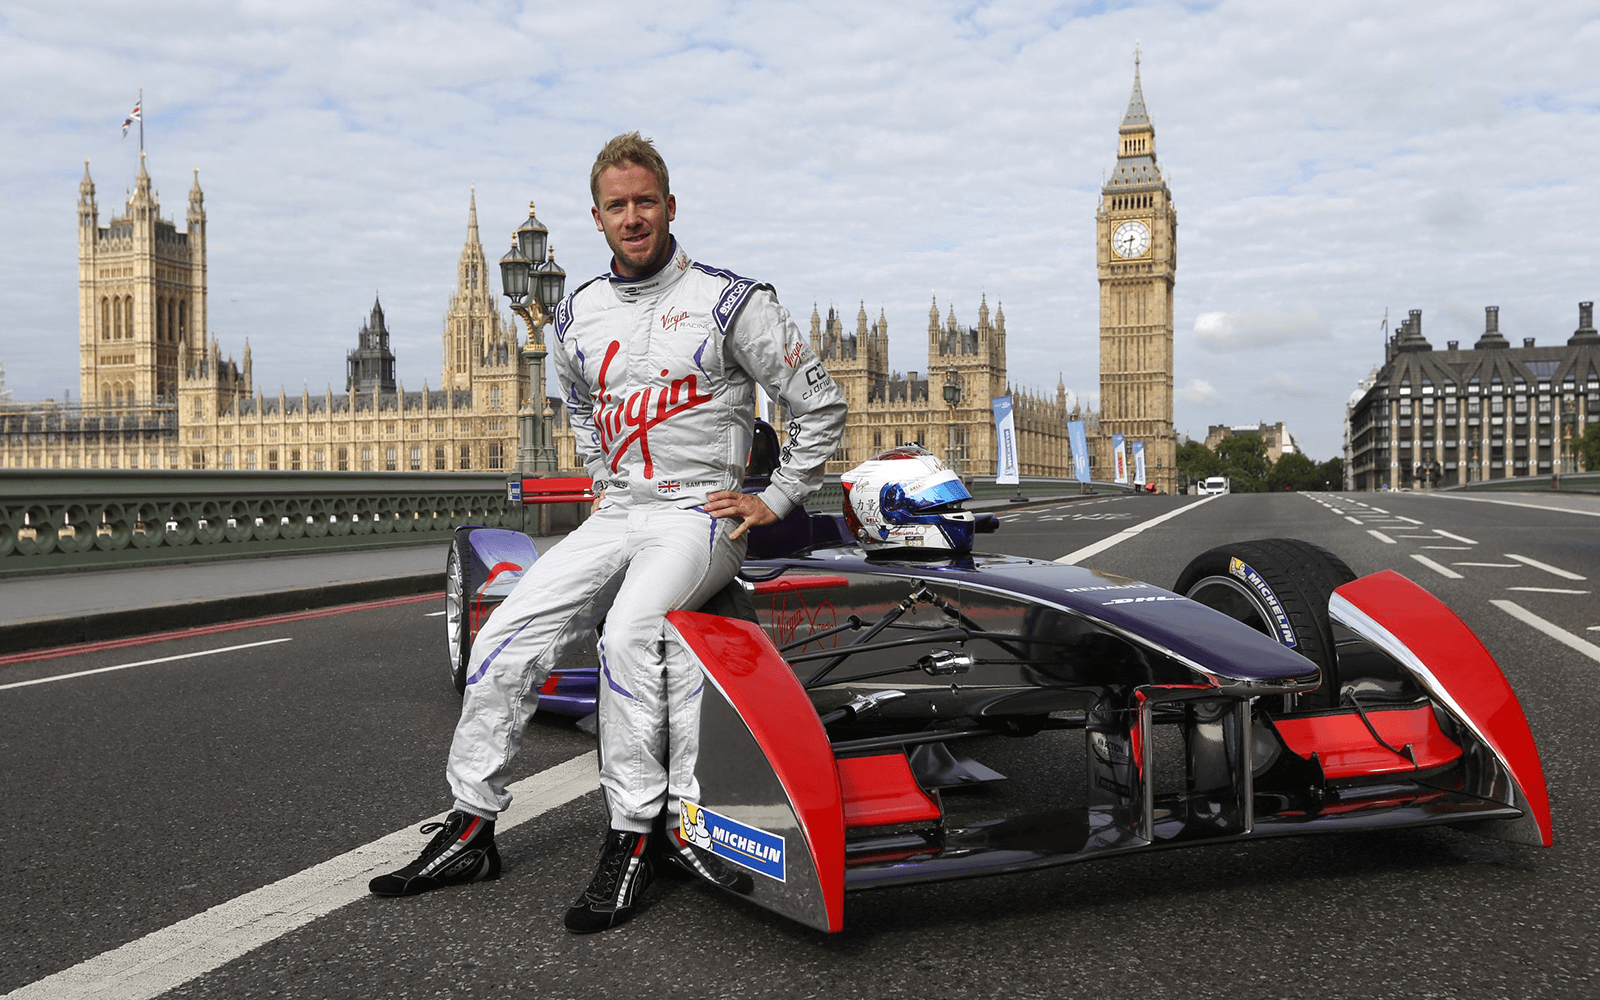 Envision Virgin Racing driver Sam Bird sits on his Formula E car in front of Big Ben and the Palace of Westminster